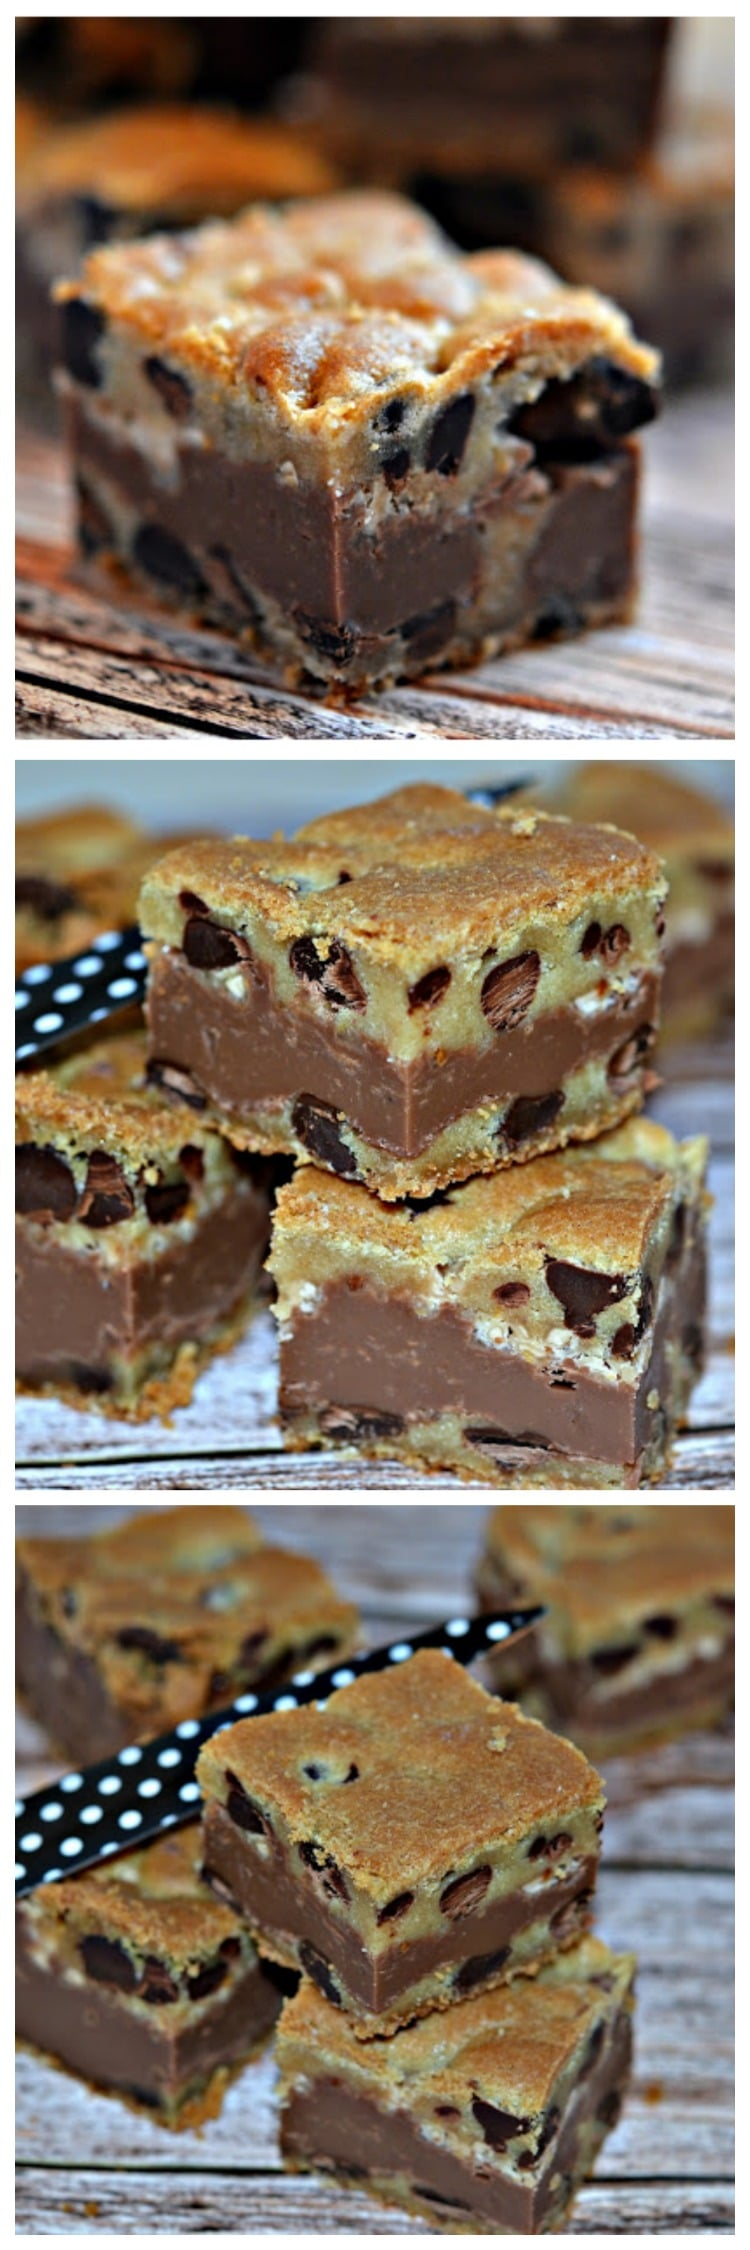 Fudge Amp Toffee Filled Chocolate Chip Cookie Bars Hugs